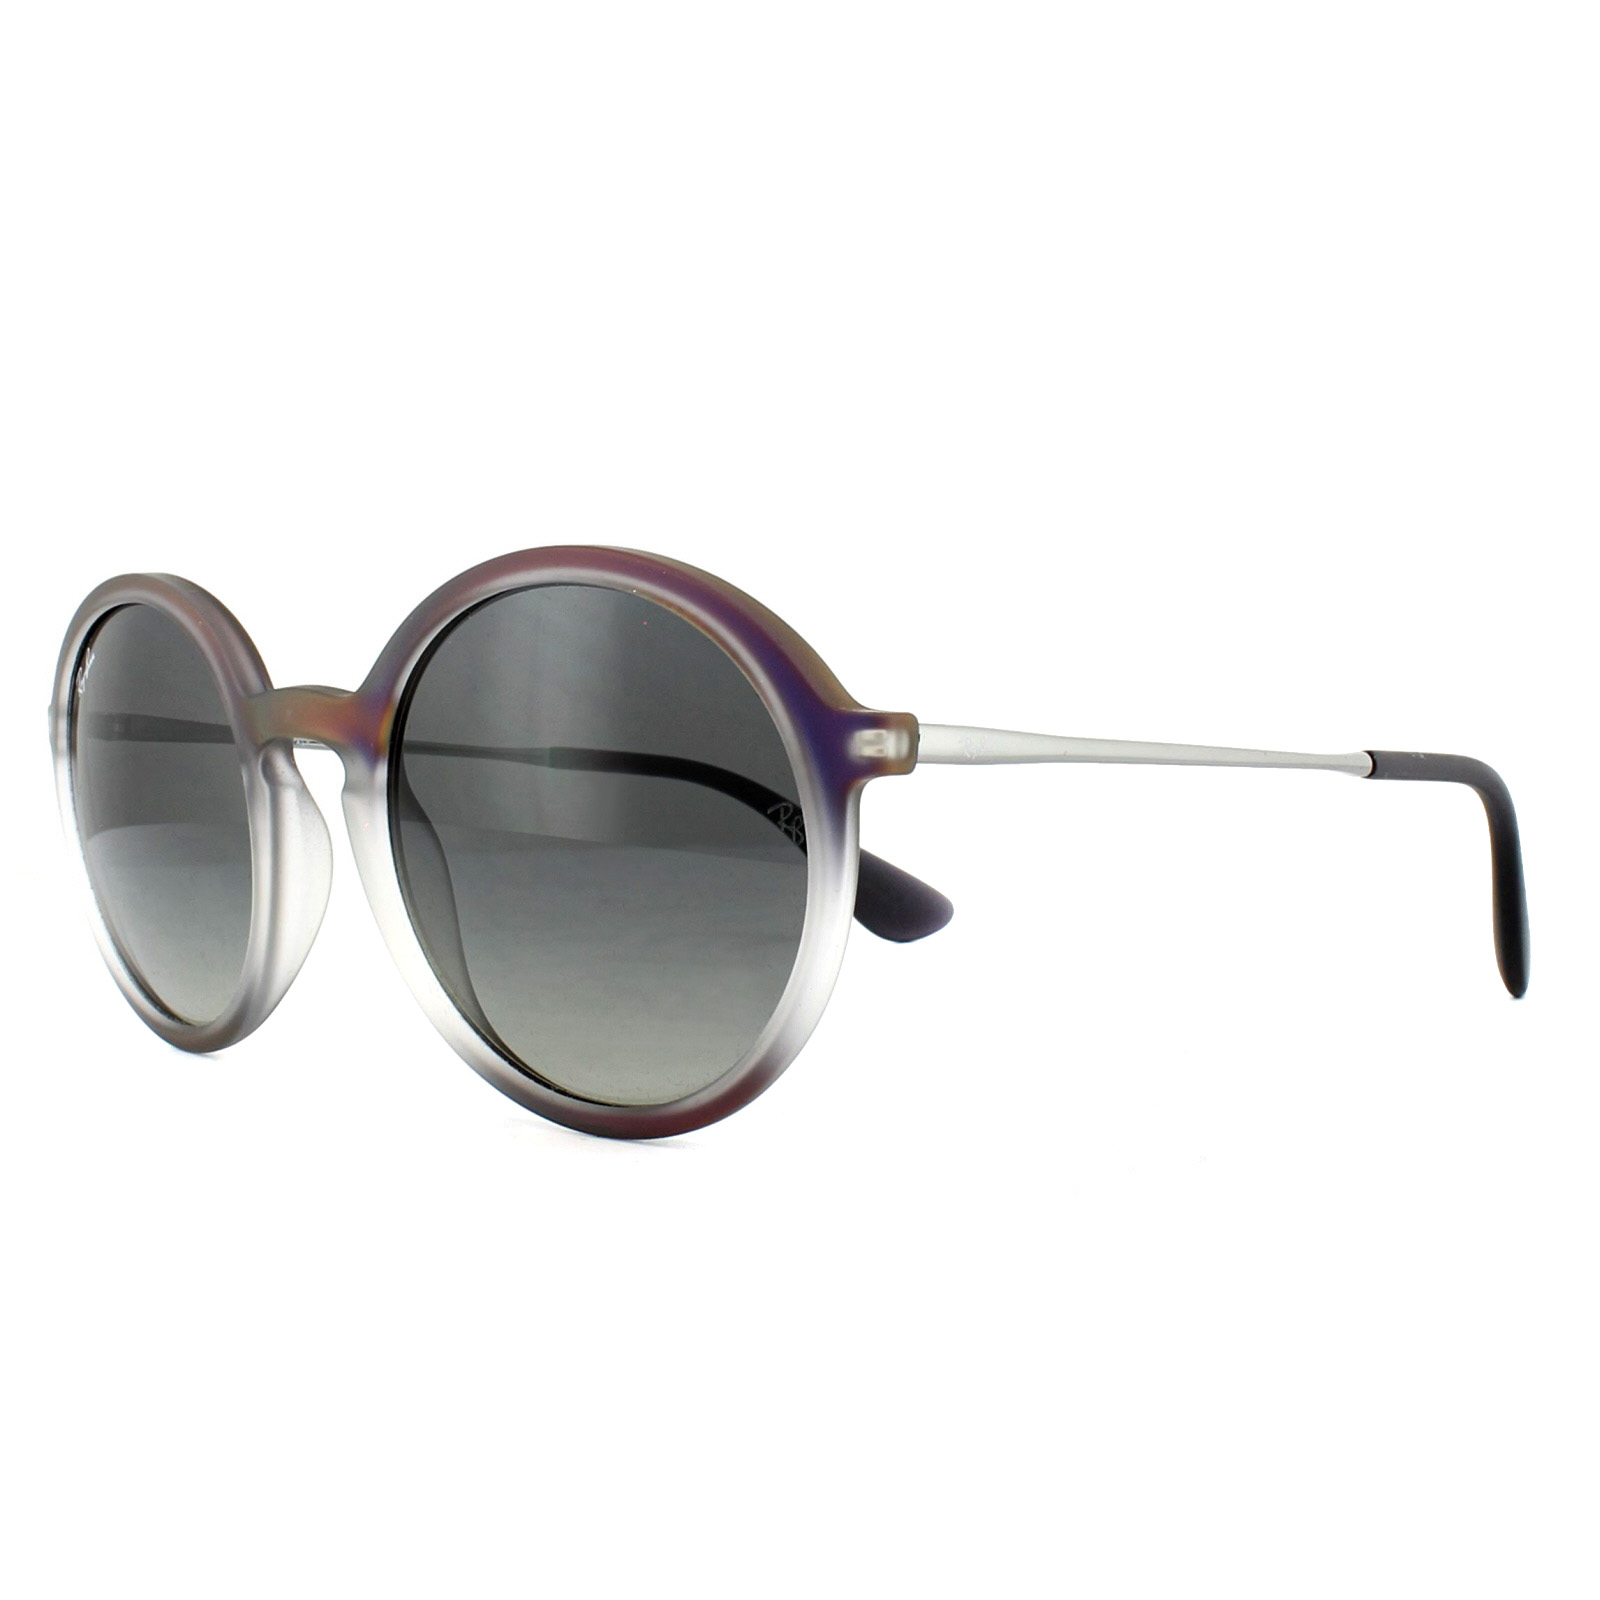 efafdeb85e Sentinel Ray-Ban Sunglasses 4222 622311 Violet Shot on Black Grey Gradient  50mm